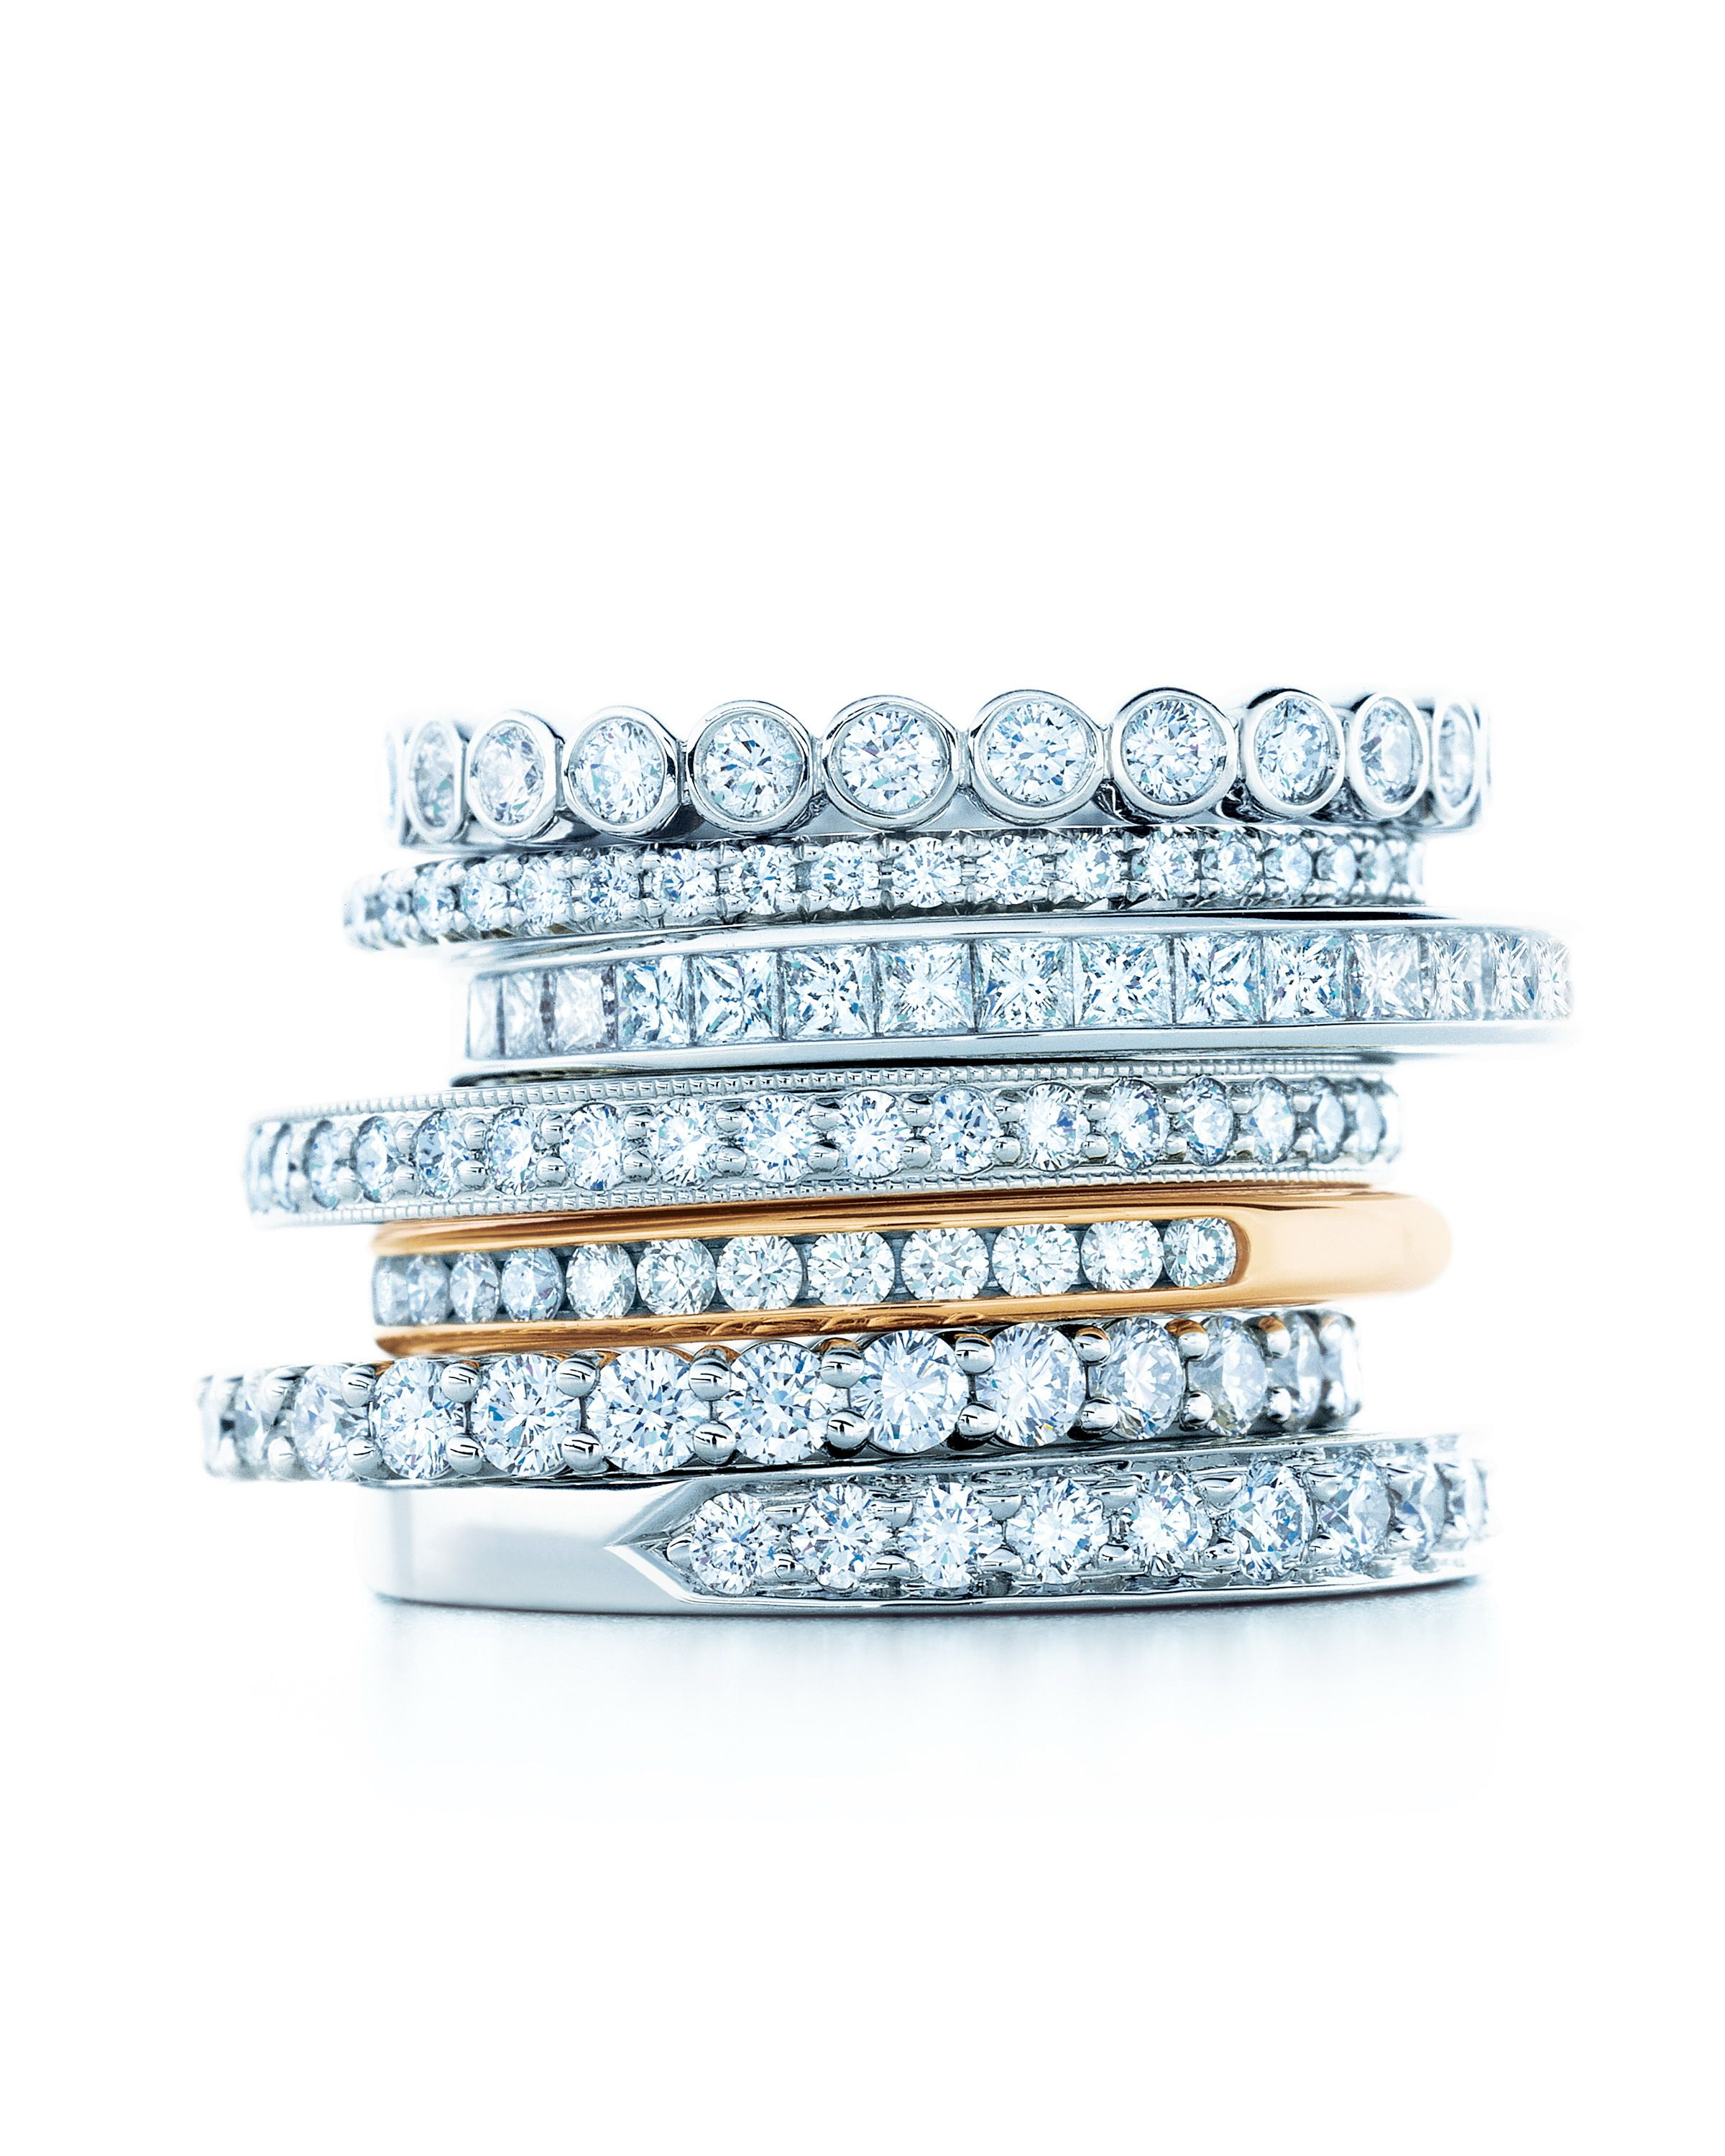 Tiffany Celebration Ring Stack Tiffany Wedding Rings Wedding Bride Jewelry Wedding Jewelry